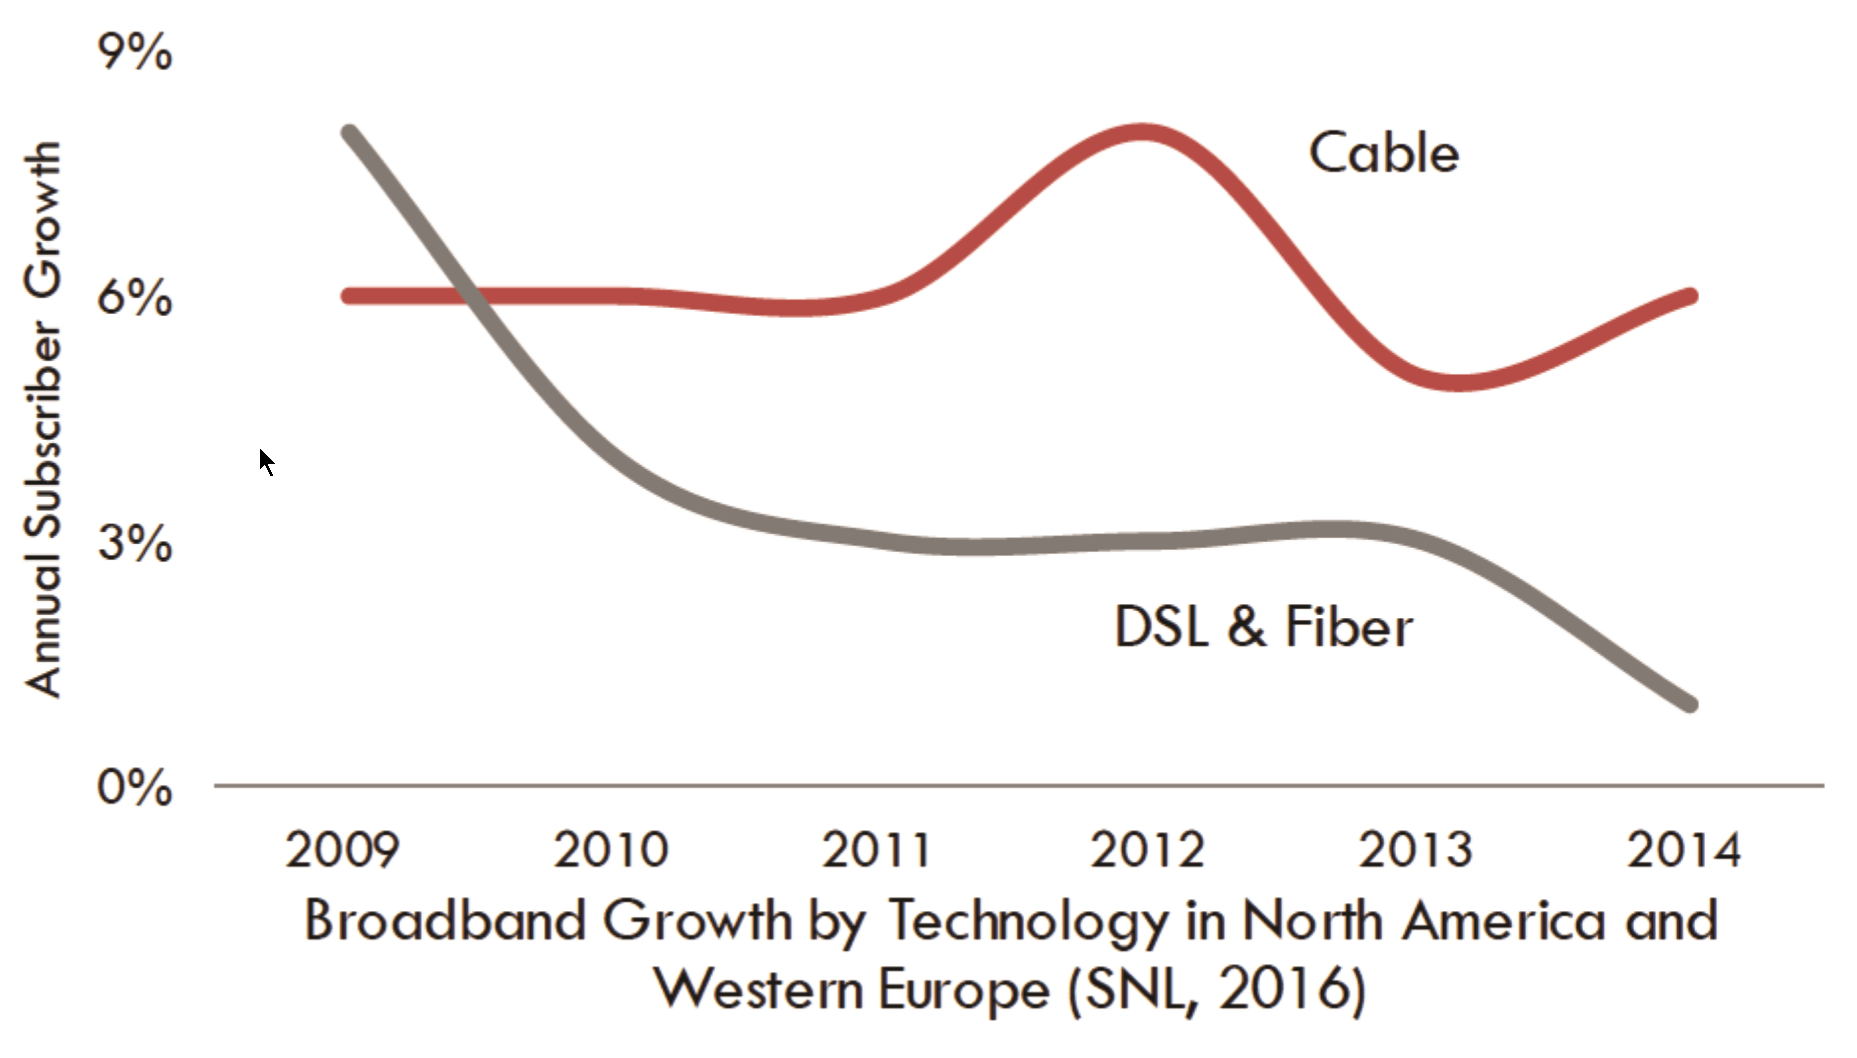 hight resolution of  dsl and fiber technologies in north america and western europe there are indications that fttp subscribership has increased in the past two years in